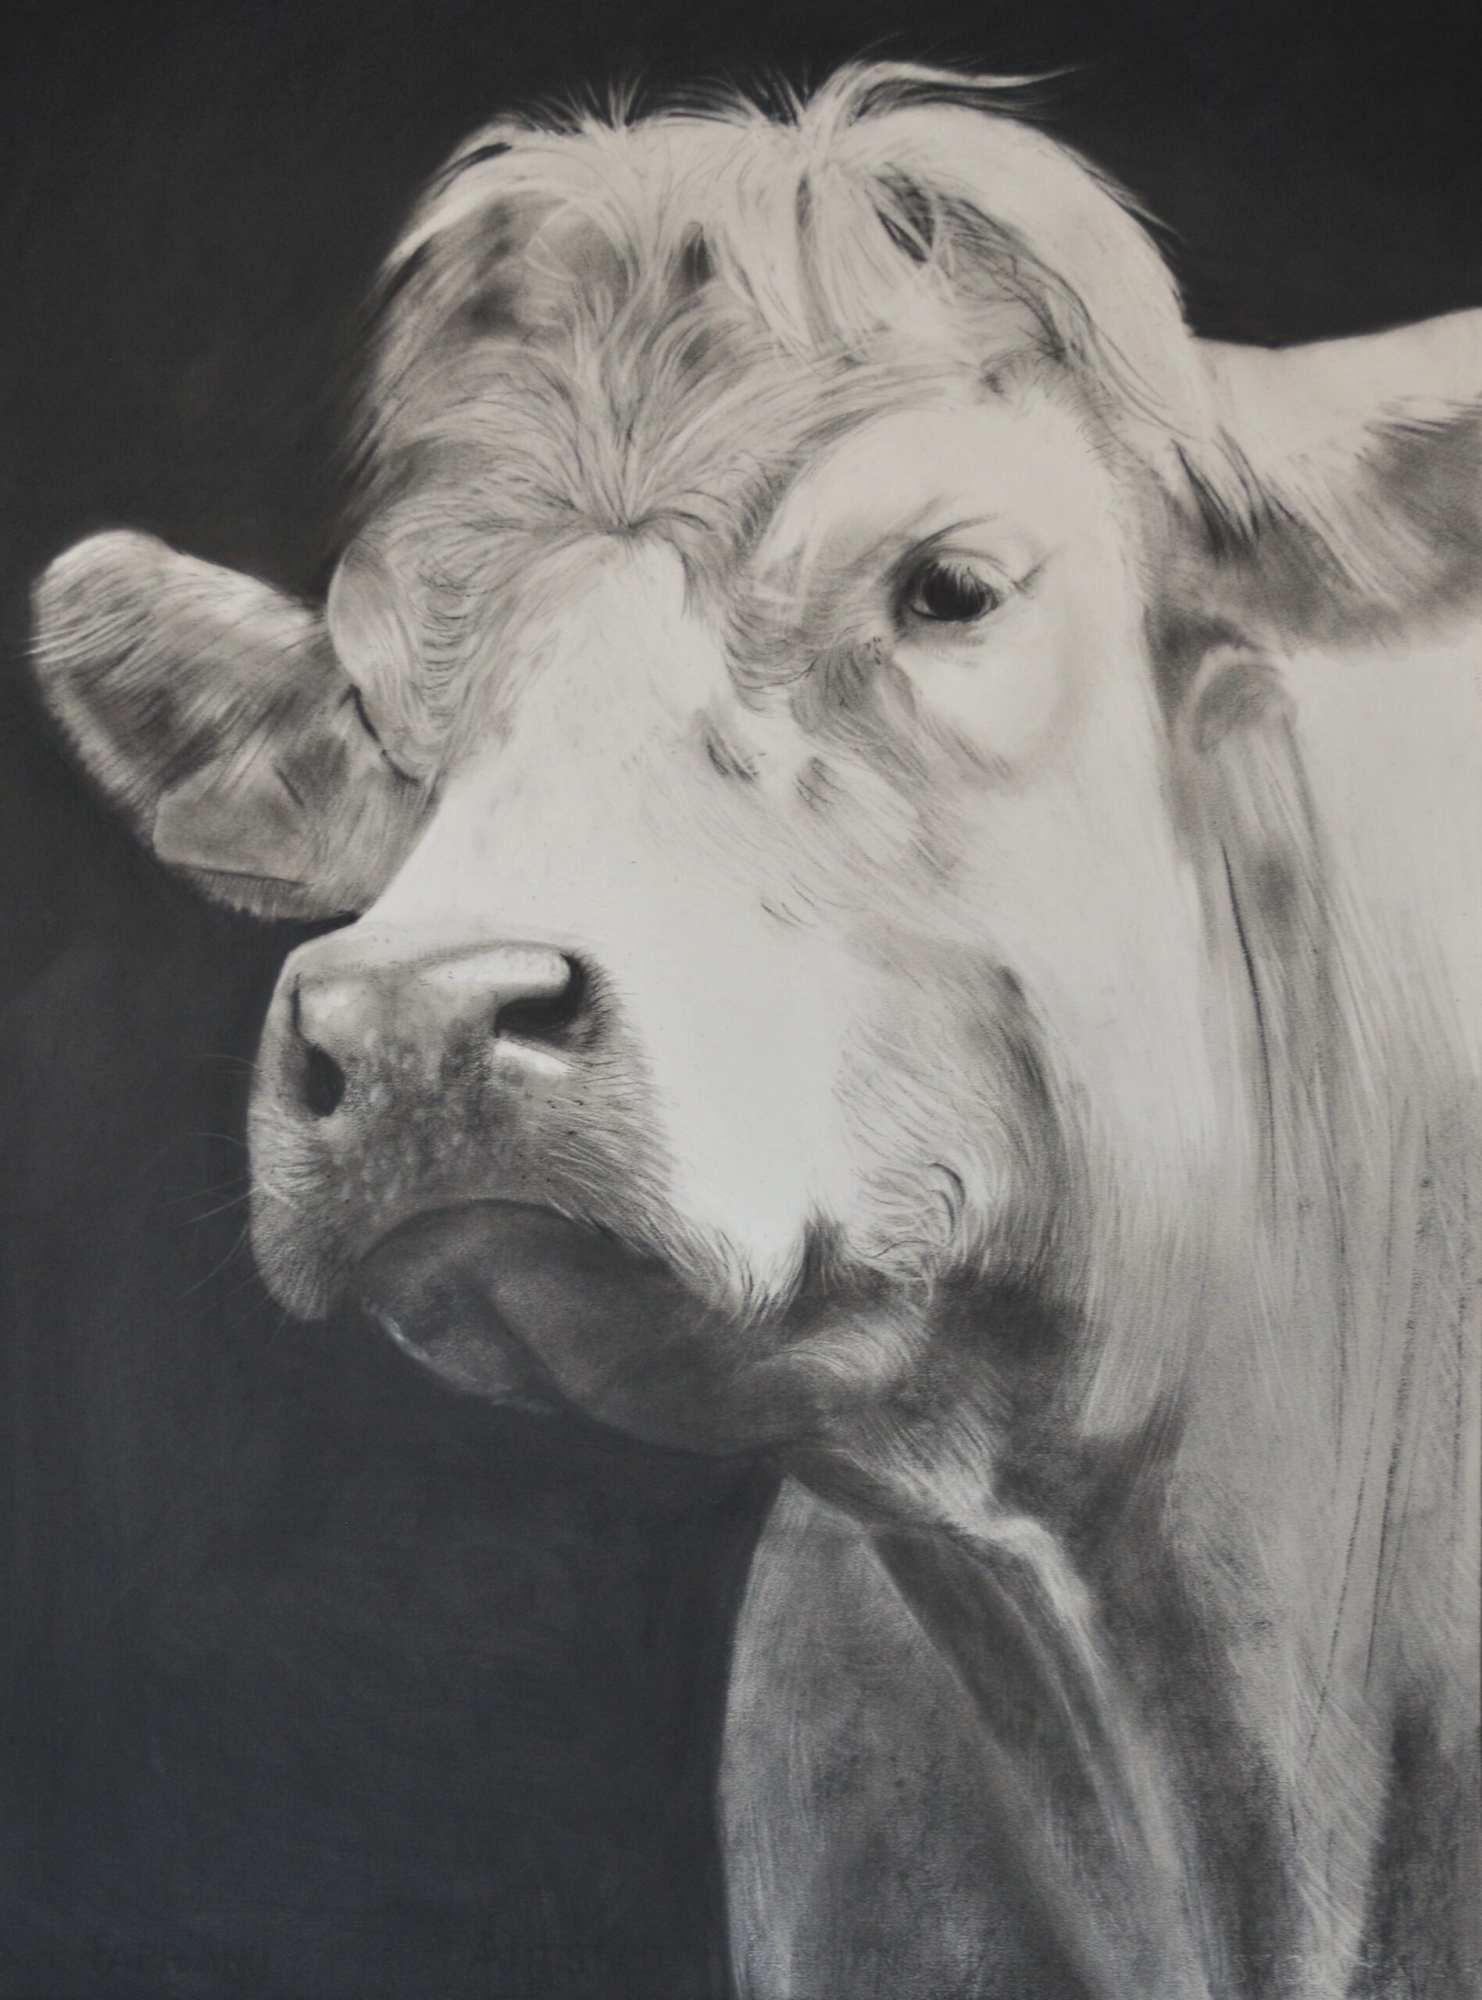 Charcoal drawing of a cow portrait format